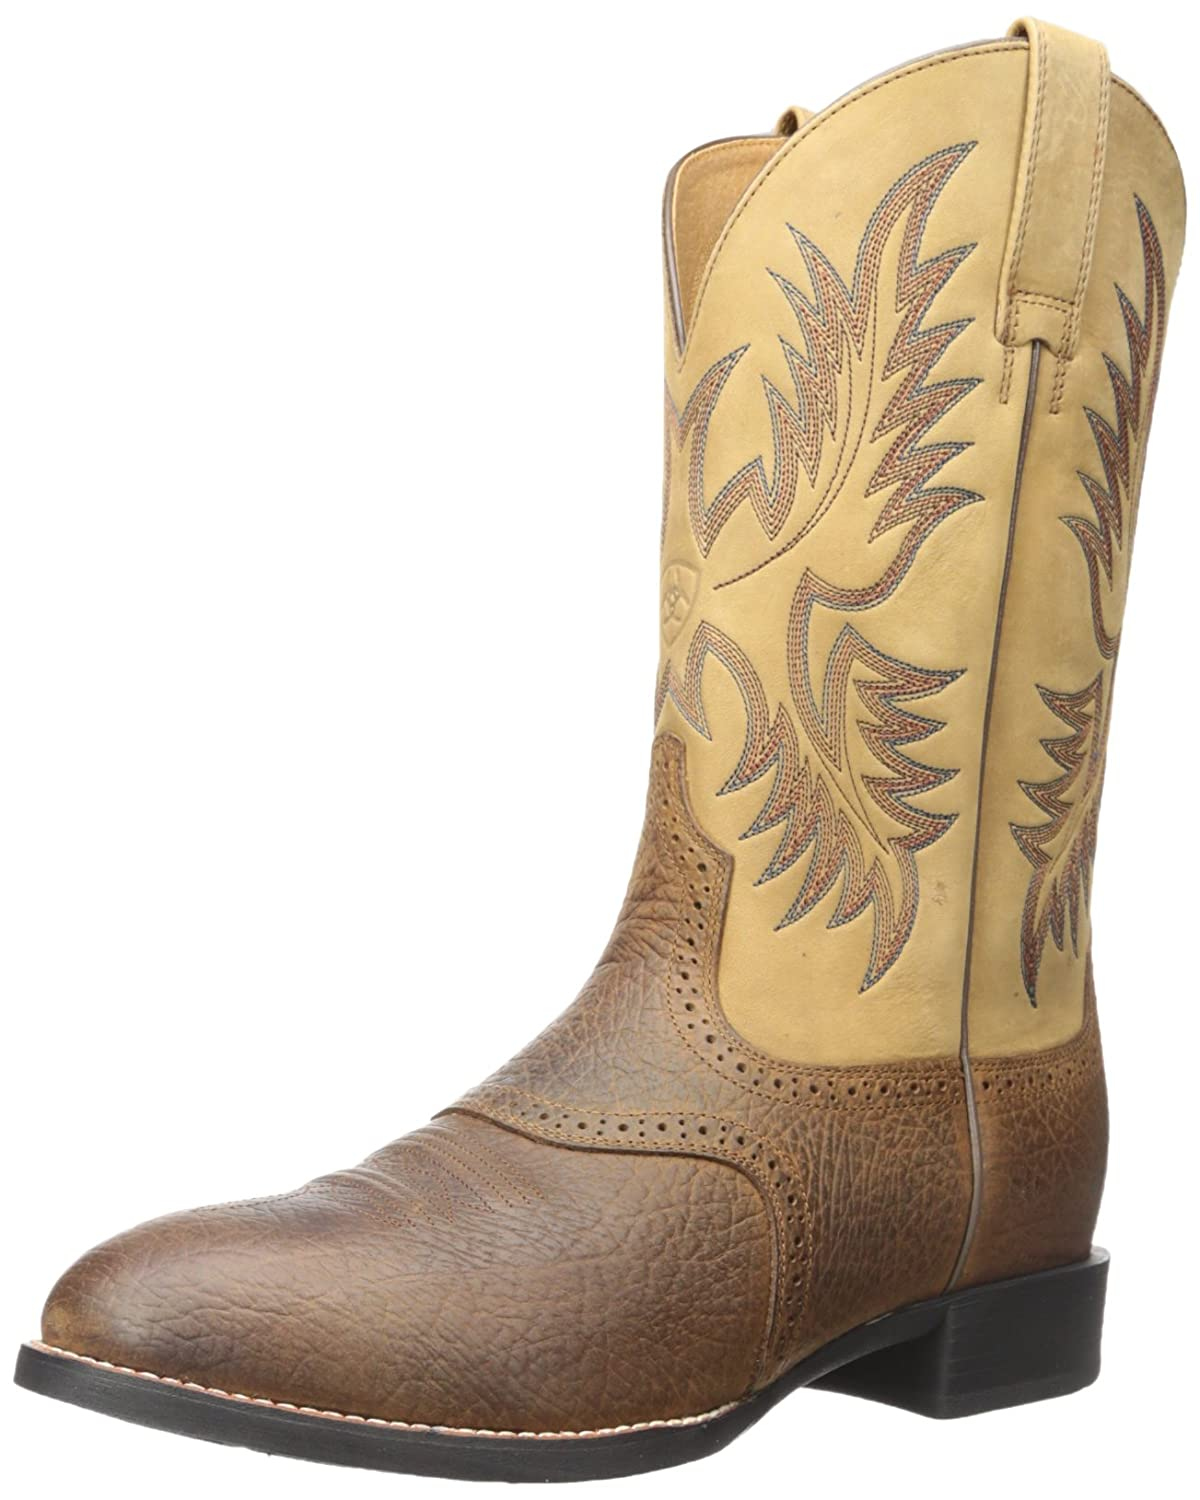 Ariat Men's Heritage Stockman Western Boot B0099SBIRI 7.5 E US|Tumbled Brown/Beige